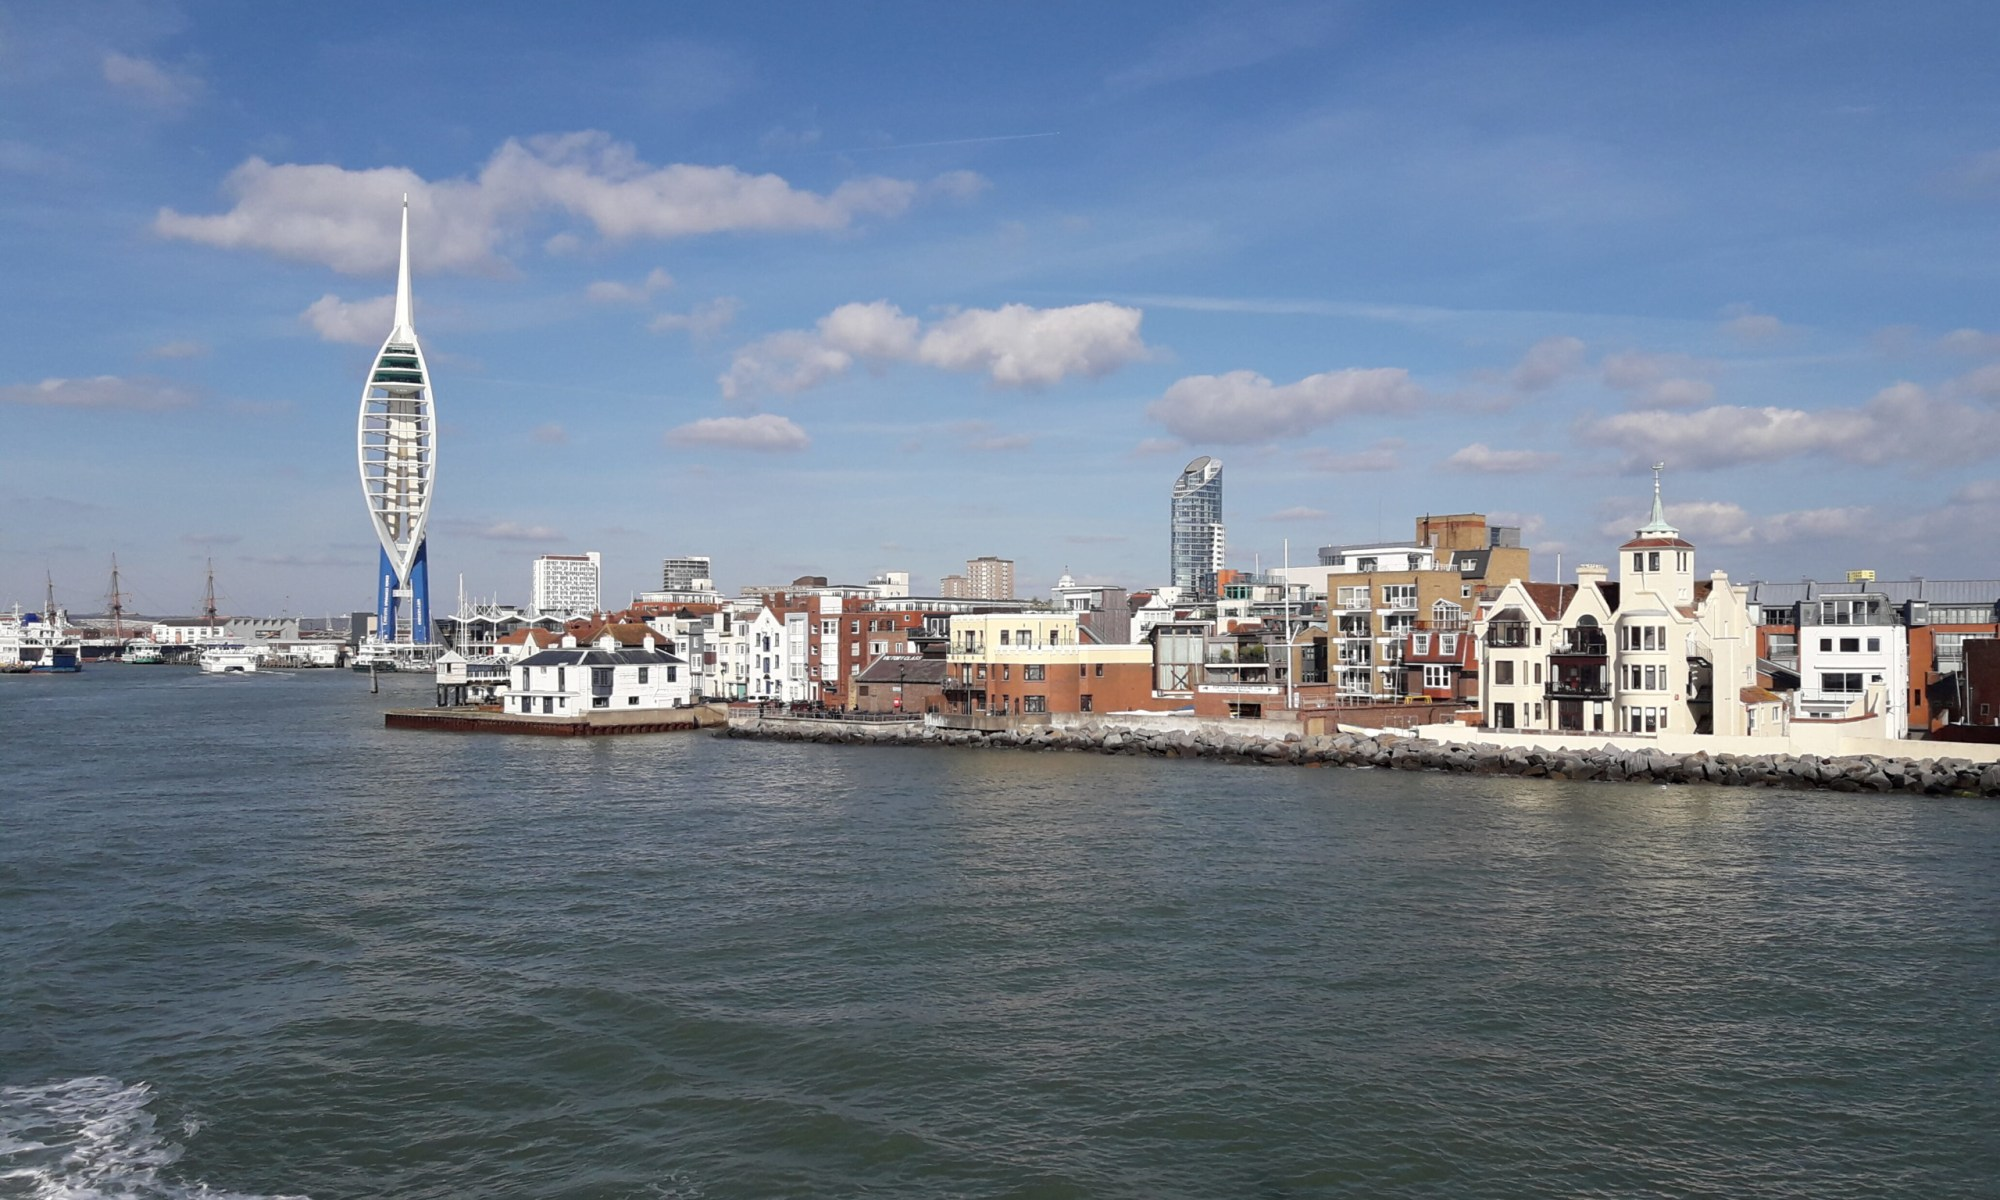 Old Portsmouth and the Spinnaker Tower